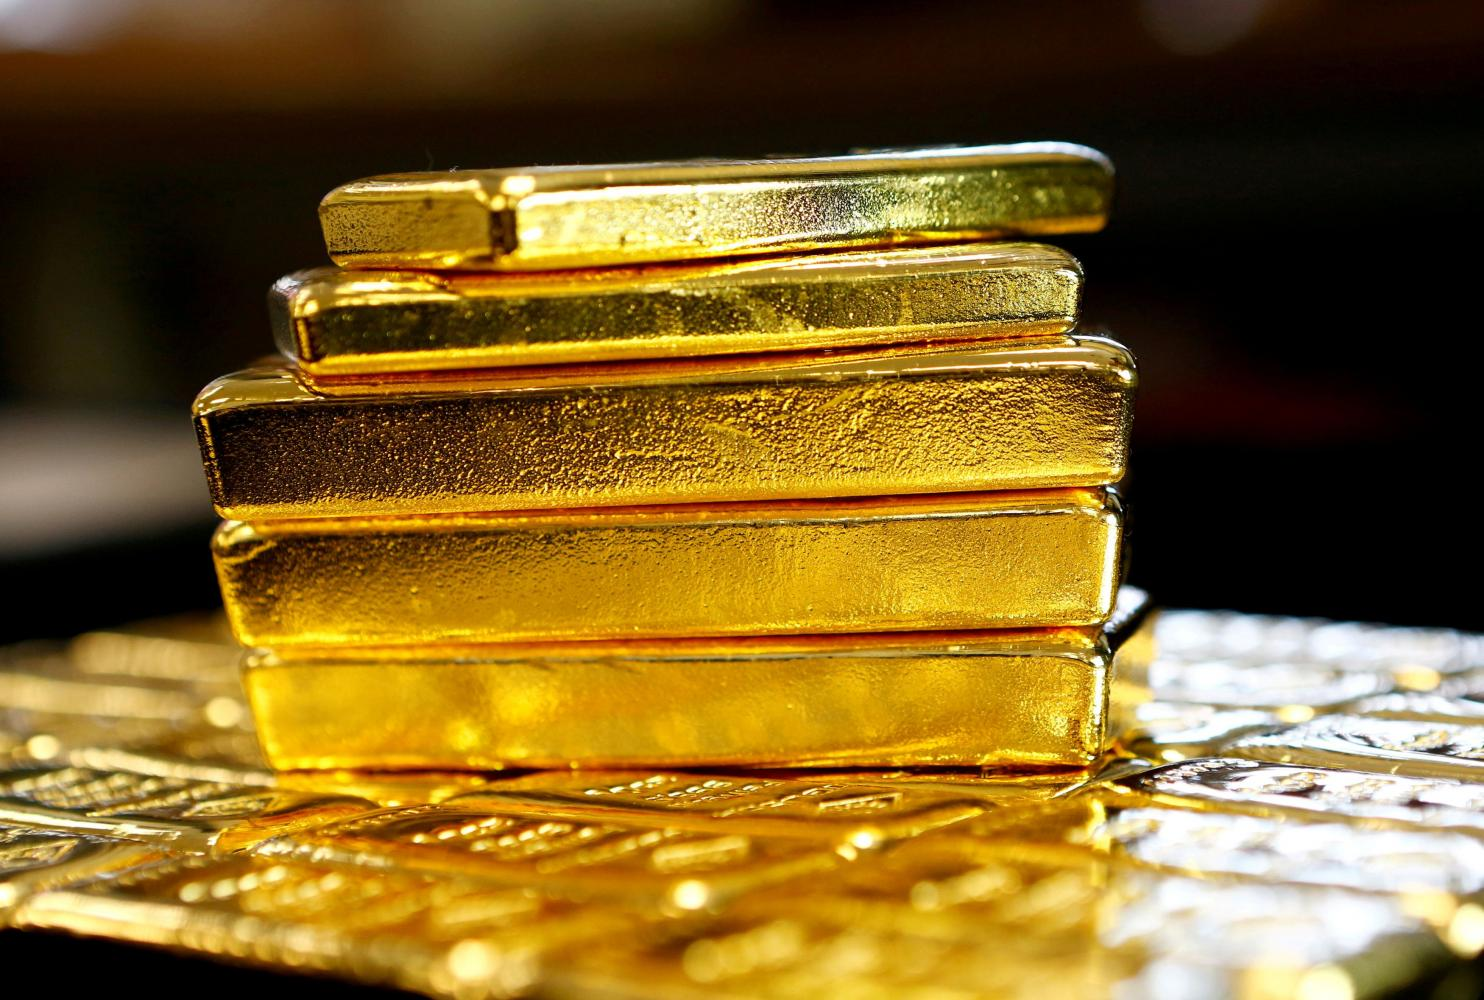 Central banks unload gold as virus bites